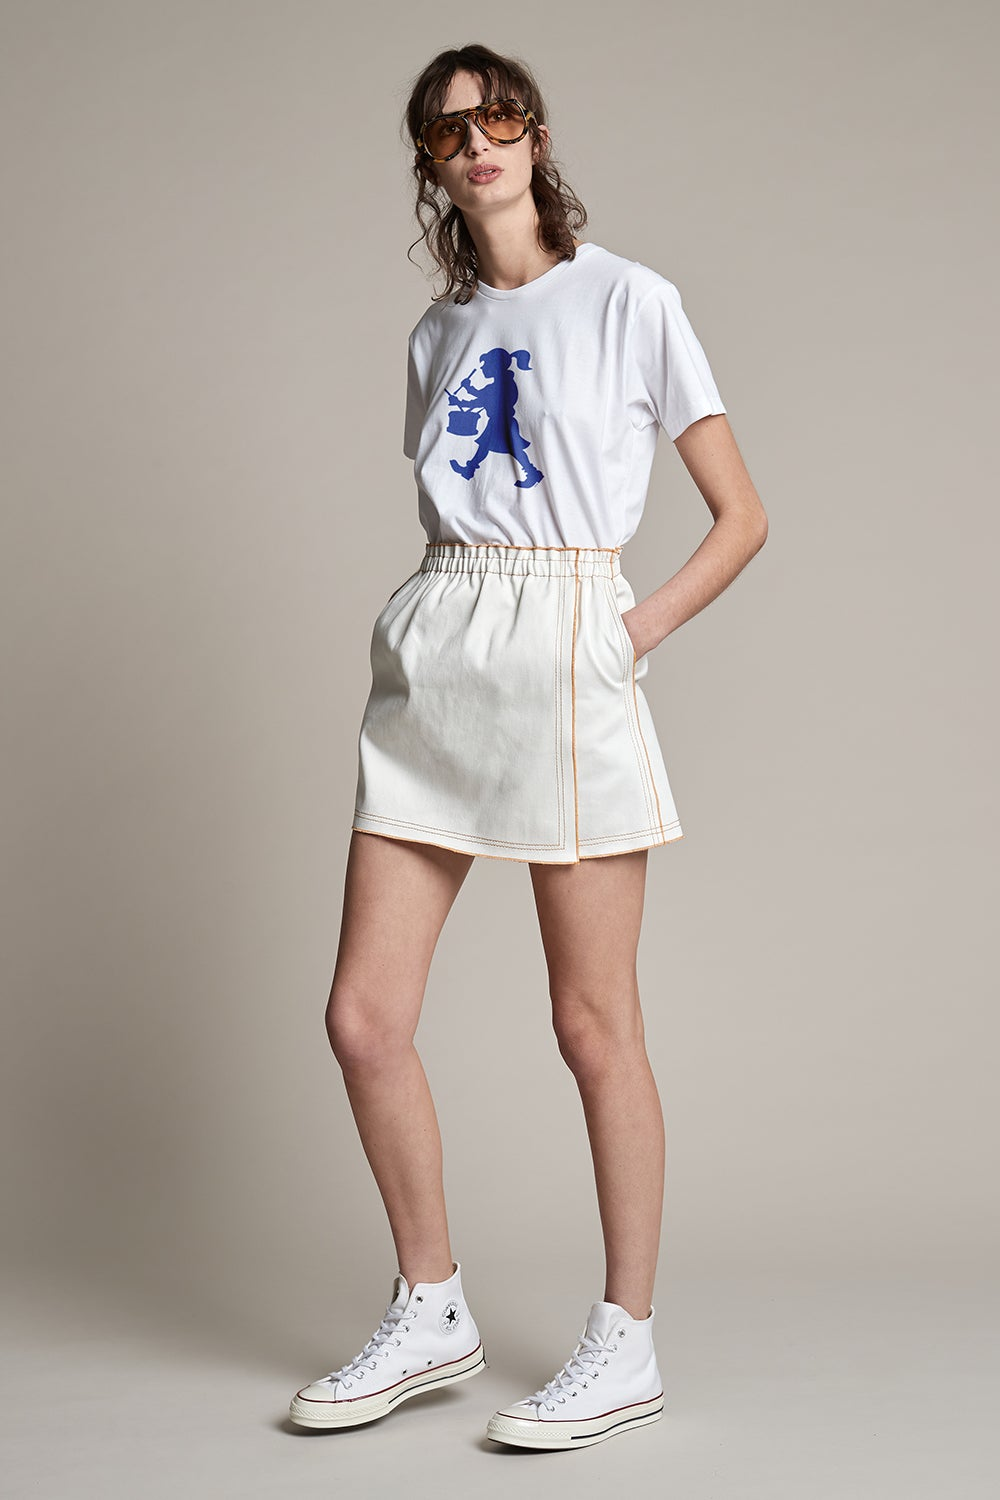 Outland Denim x Karen Walker Rhythm Skirt